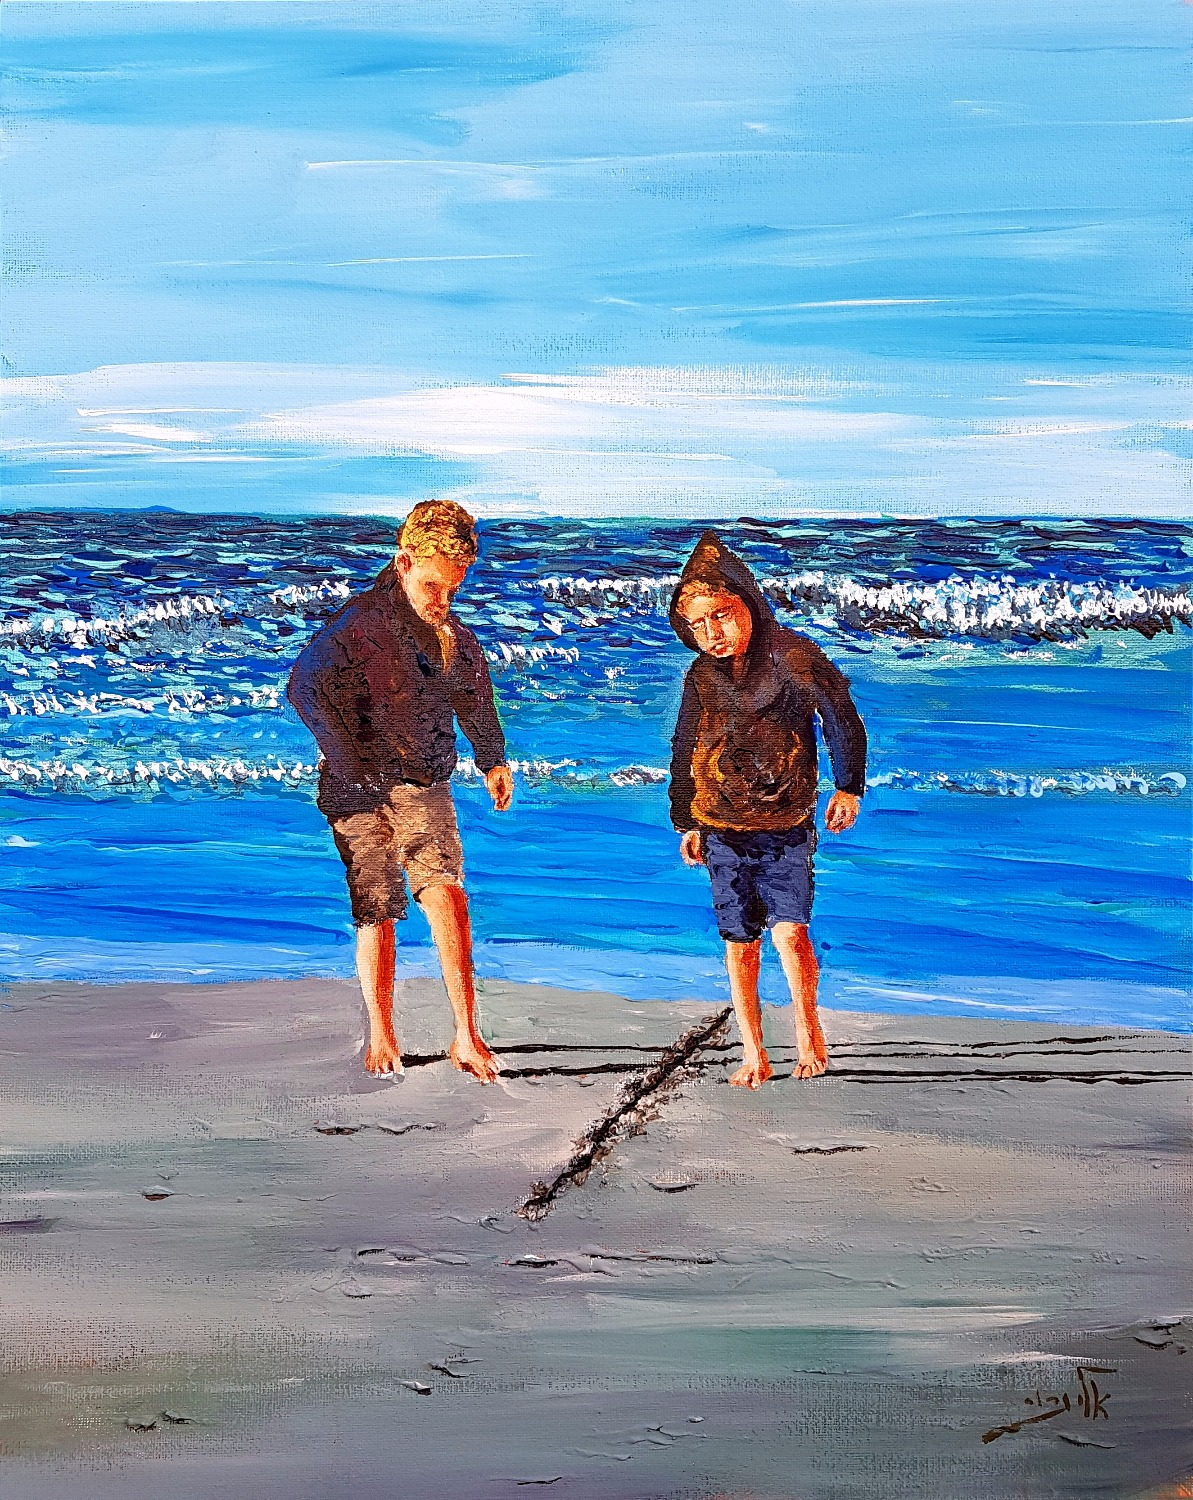 It's about time one of us drew a line in the sand. Better hope the tide will take the line away_edit